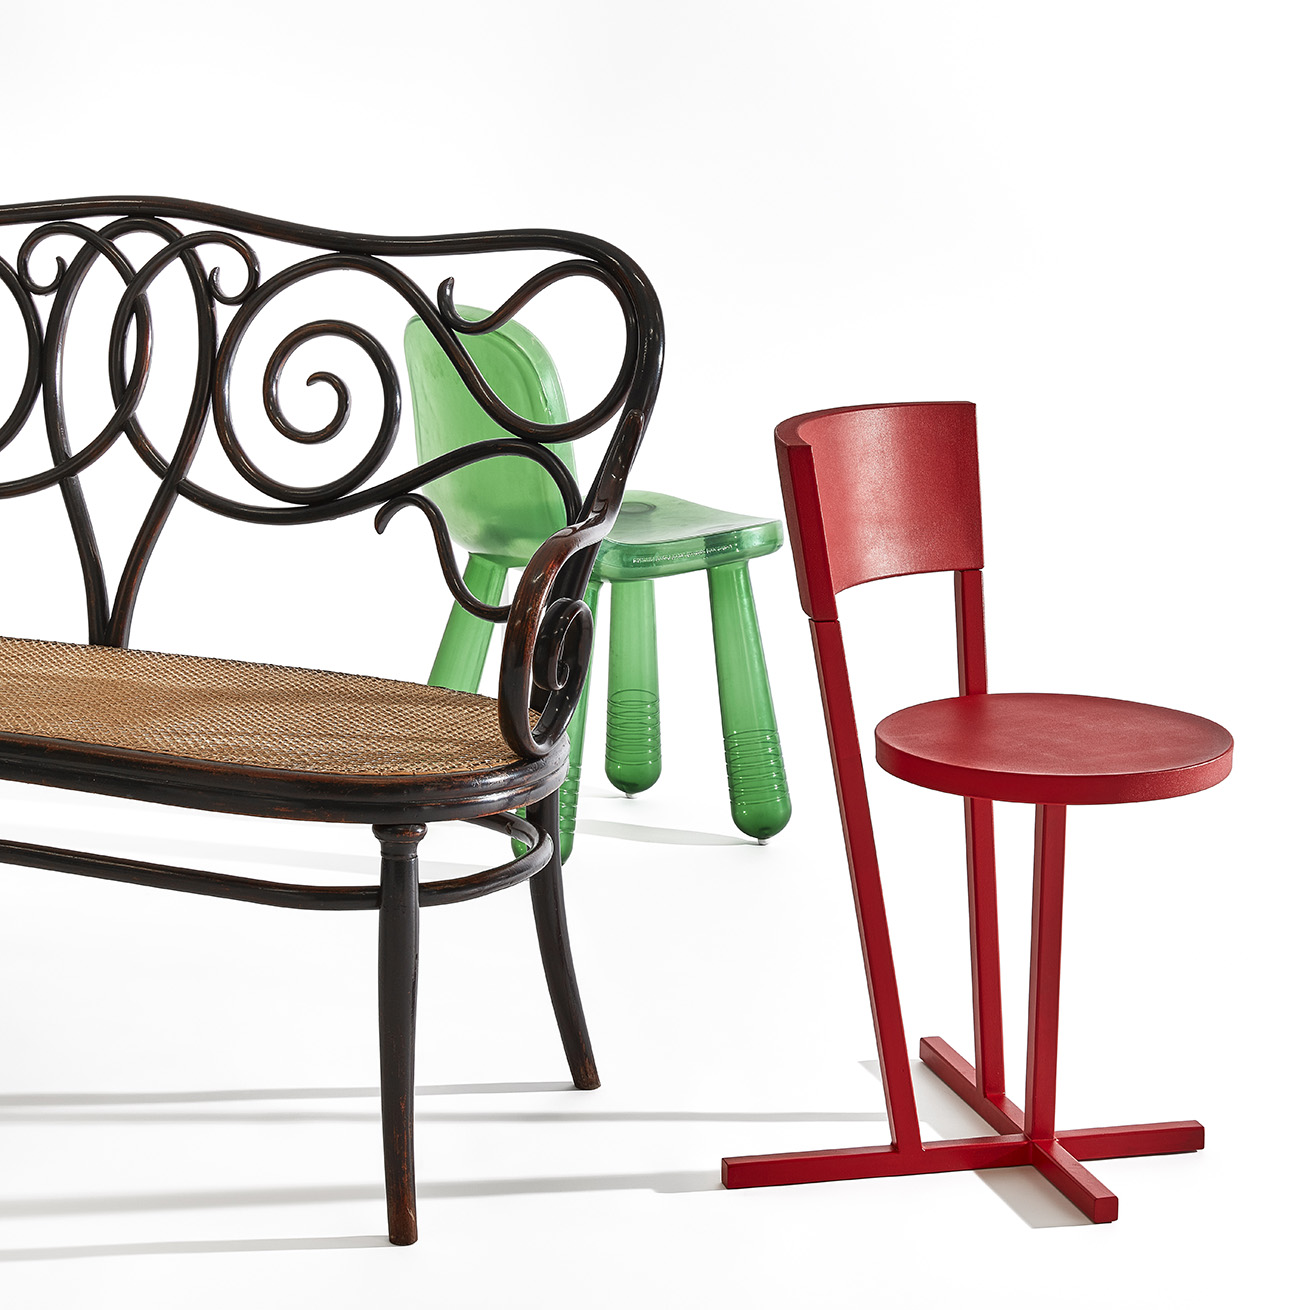 From left to right: Michael Thonet, couch Nr. 4 (variation op Café Daum-furniture), 1849-1850, prod. Gebrüder Thonet, Vienna; Marcel Wanders, Sparkling, 2010, prod. Magis, Torre di Mosto (IT); Richard Hutten Stedelijk-chair (prototype), 2008, prod. Lensvelt, Breda (NL).  Collection Stedelijk Museum Amsterdam. Photo: Peggy Janssen, styling: Heidi Willems - PURE styling